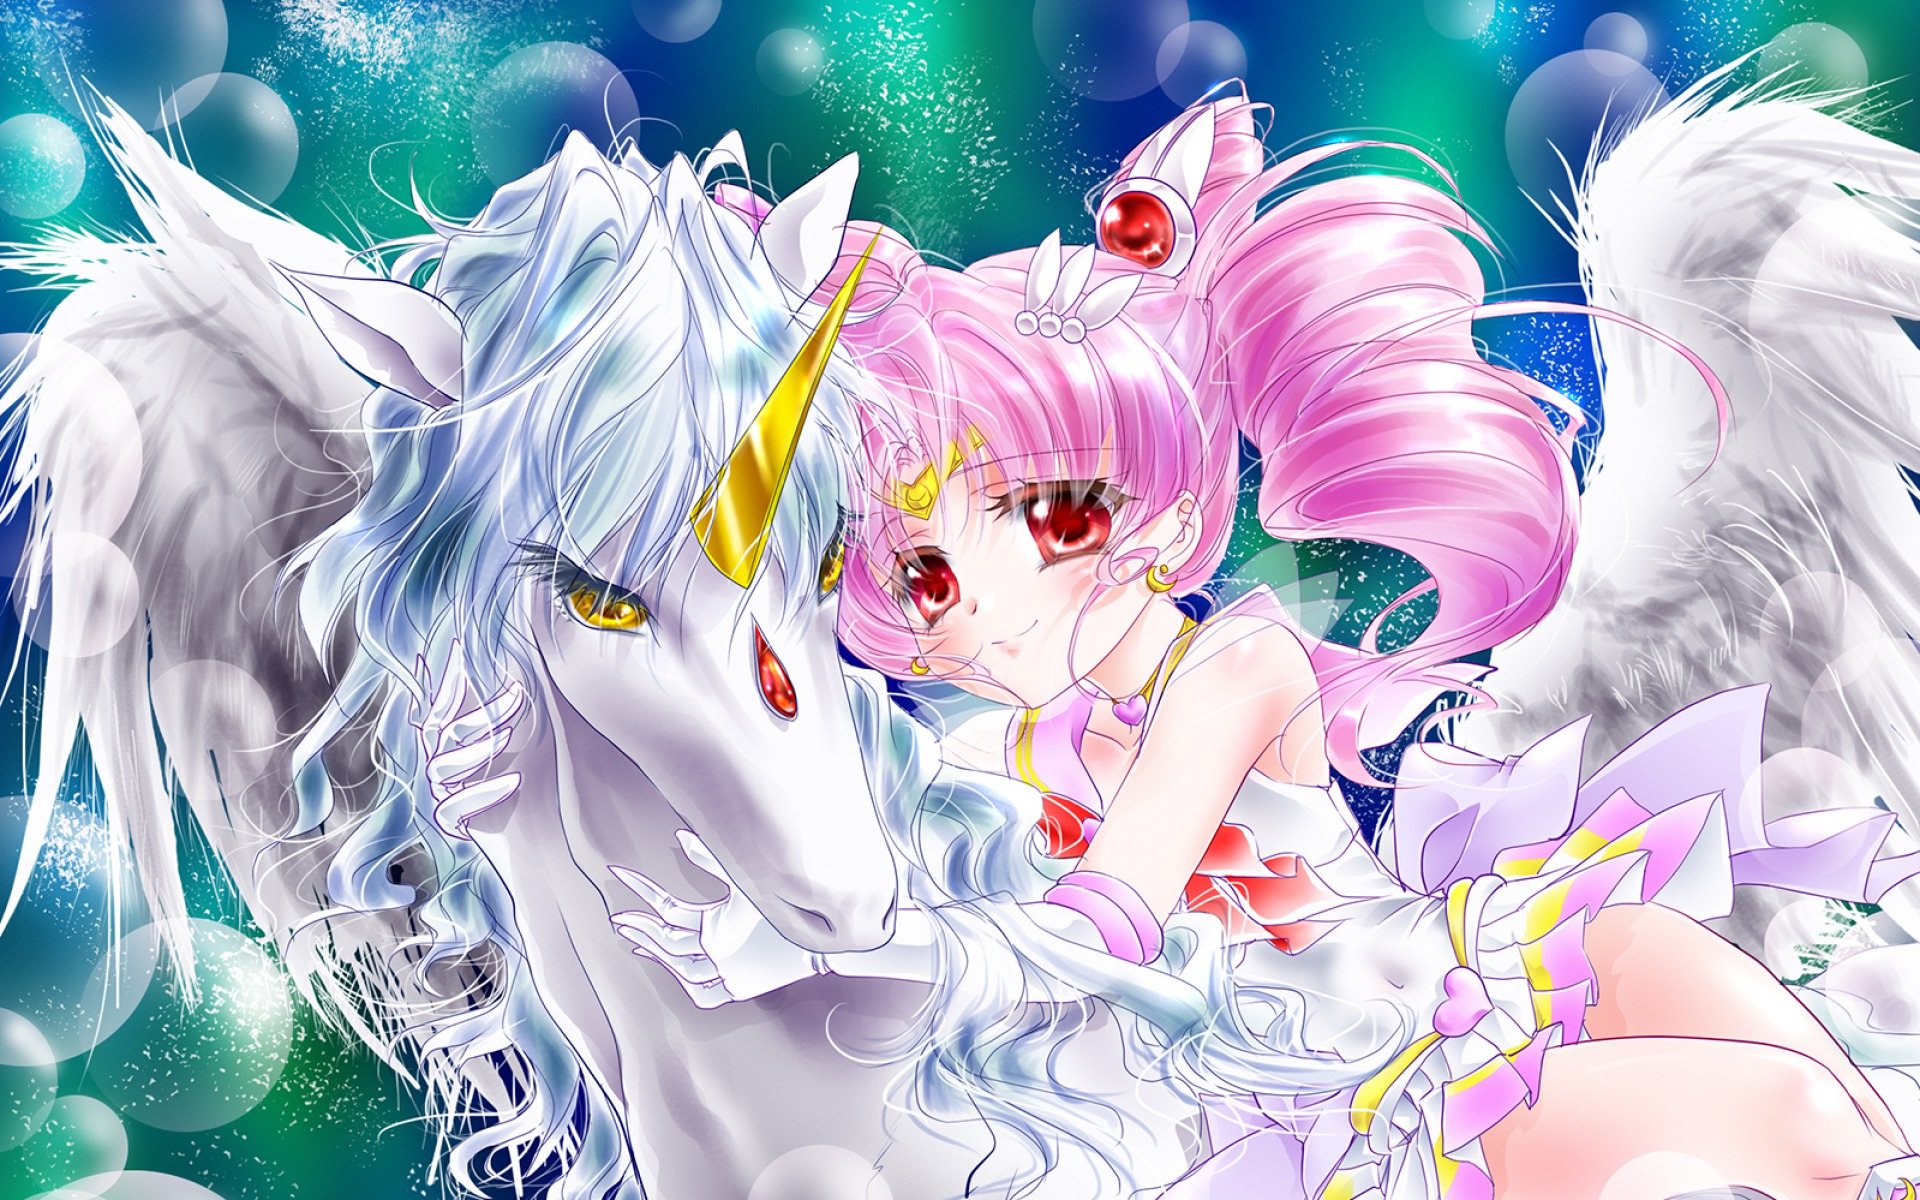 Anime unicorn wallpaper high definition high quality widescreen anime unicorn wallpaper anime unicorn voltagebd Images